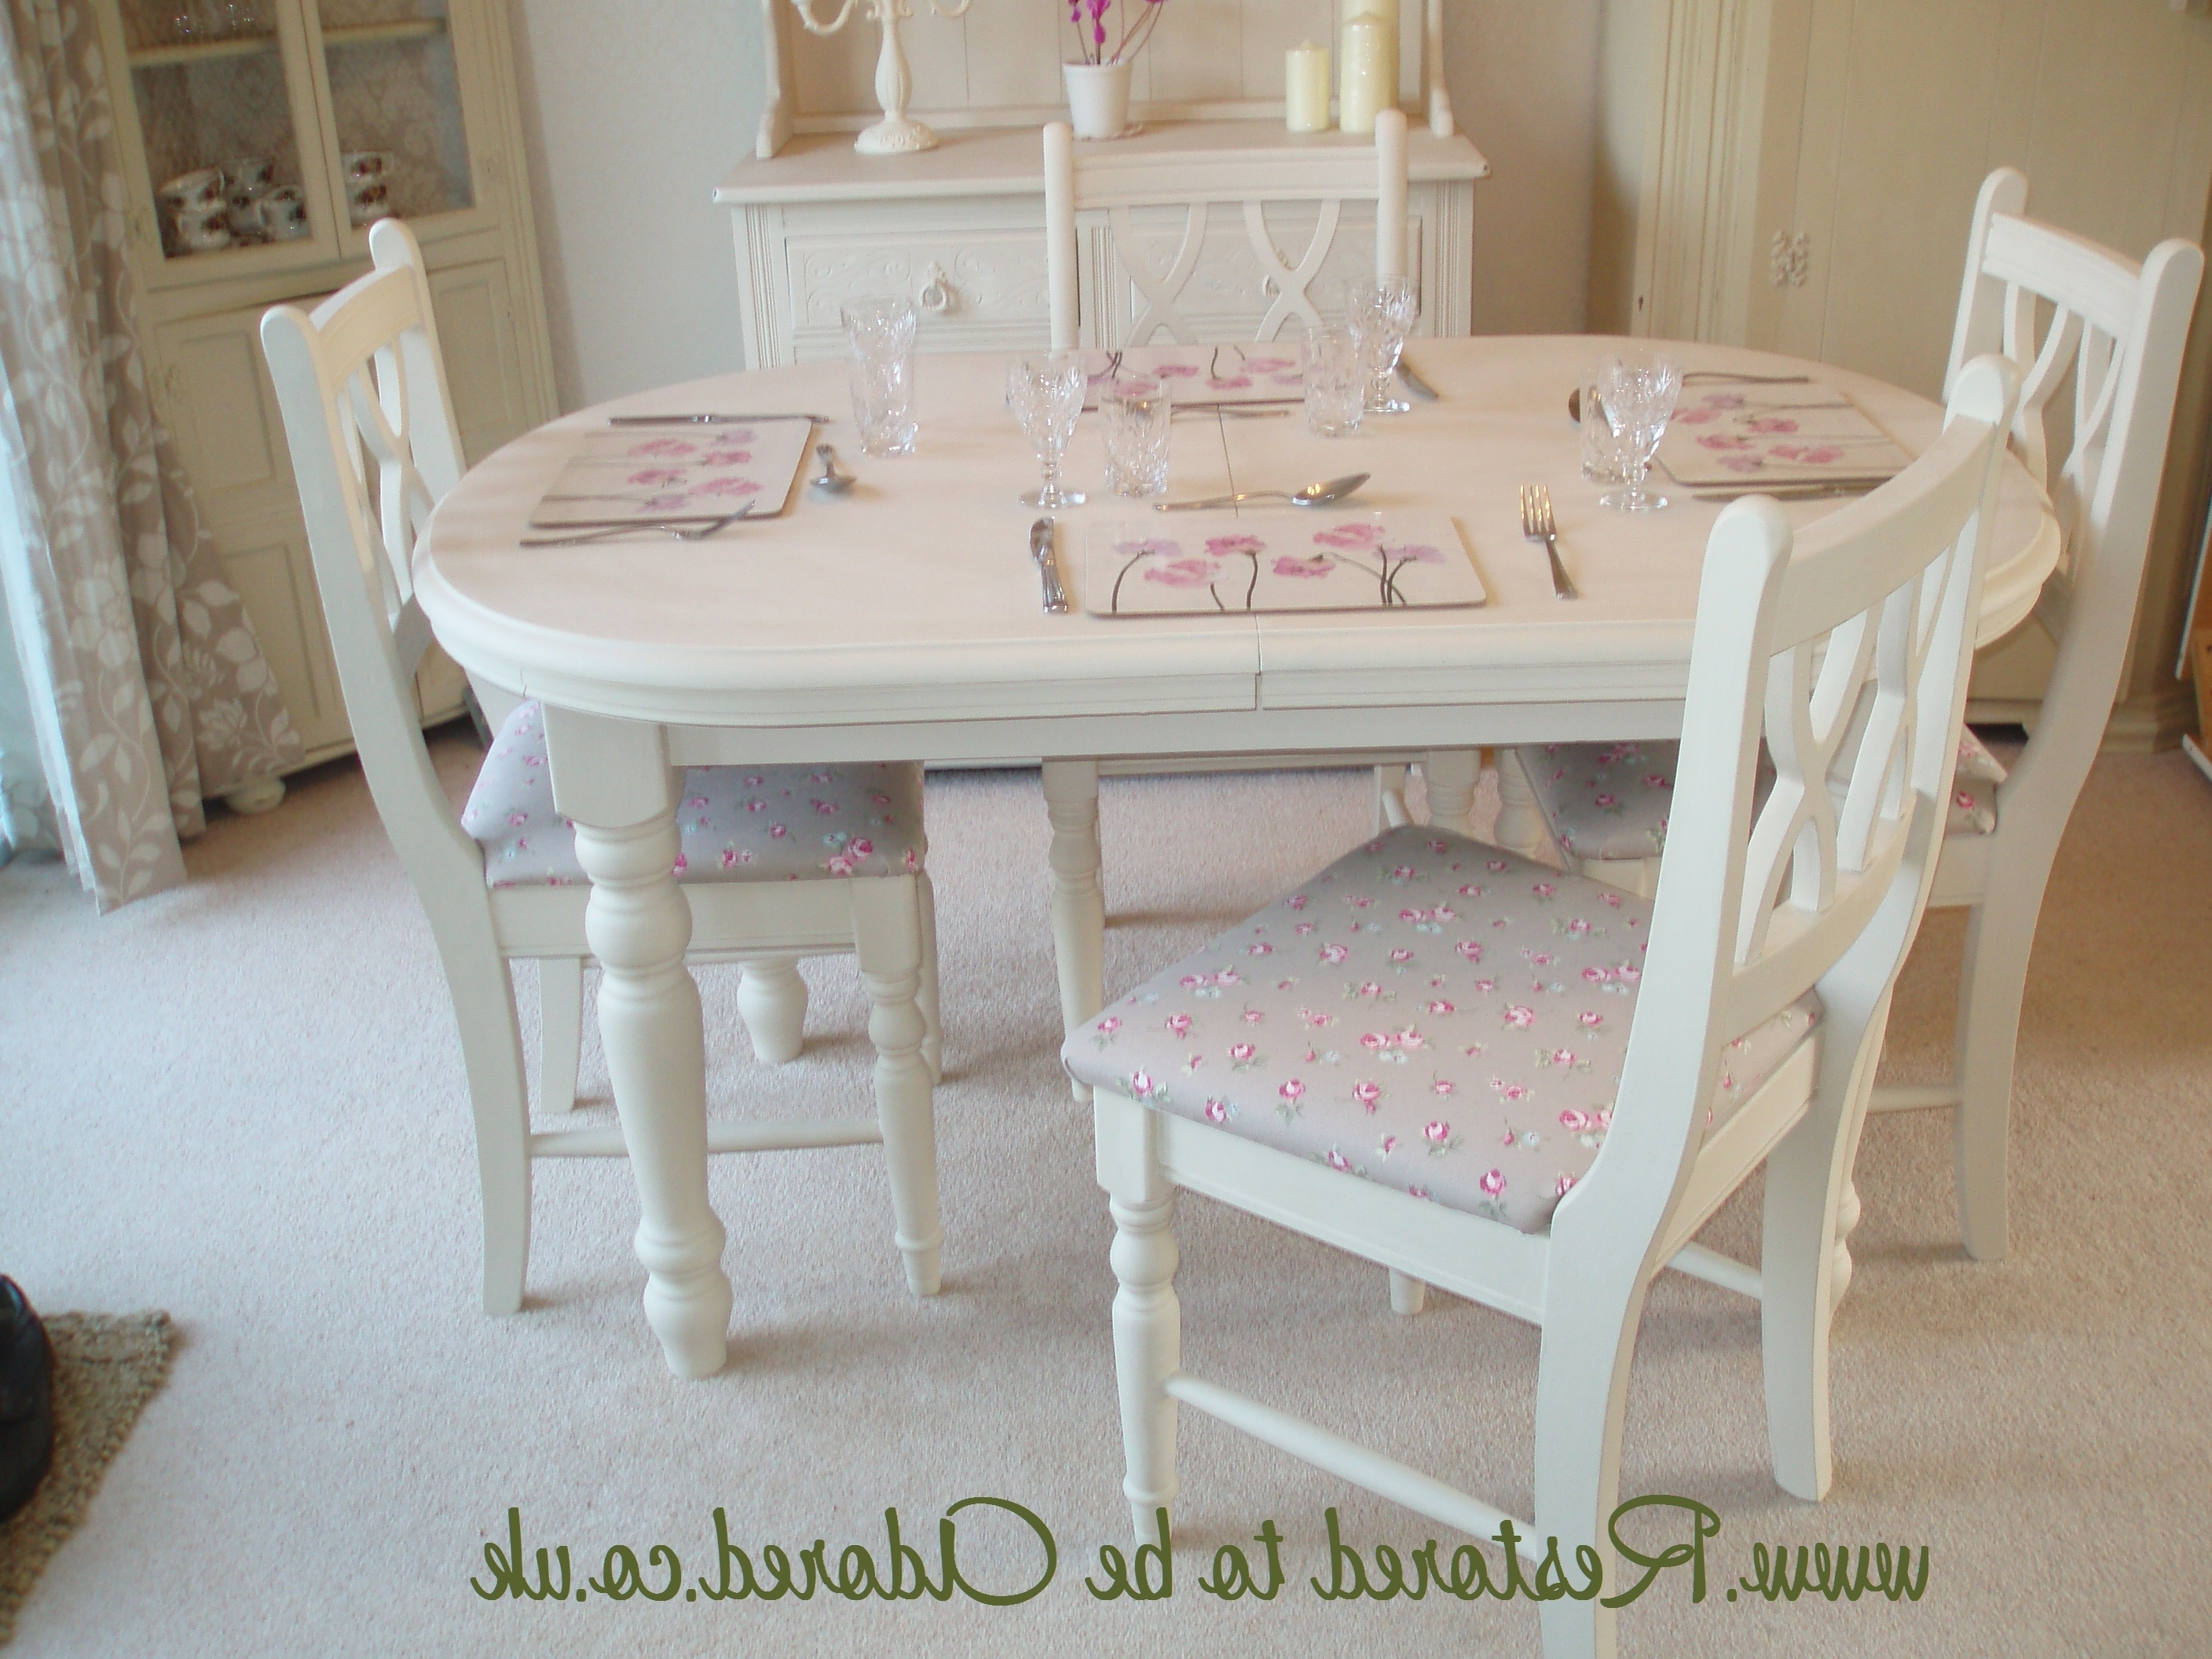 Widely Used Shabby Chic Dining Table And Chairs Set – Castrophotos Regarding Shabby Chic Cream Dining Tables And Chairs (View 2 of 25)